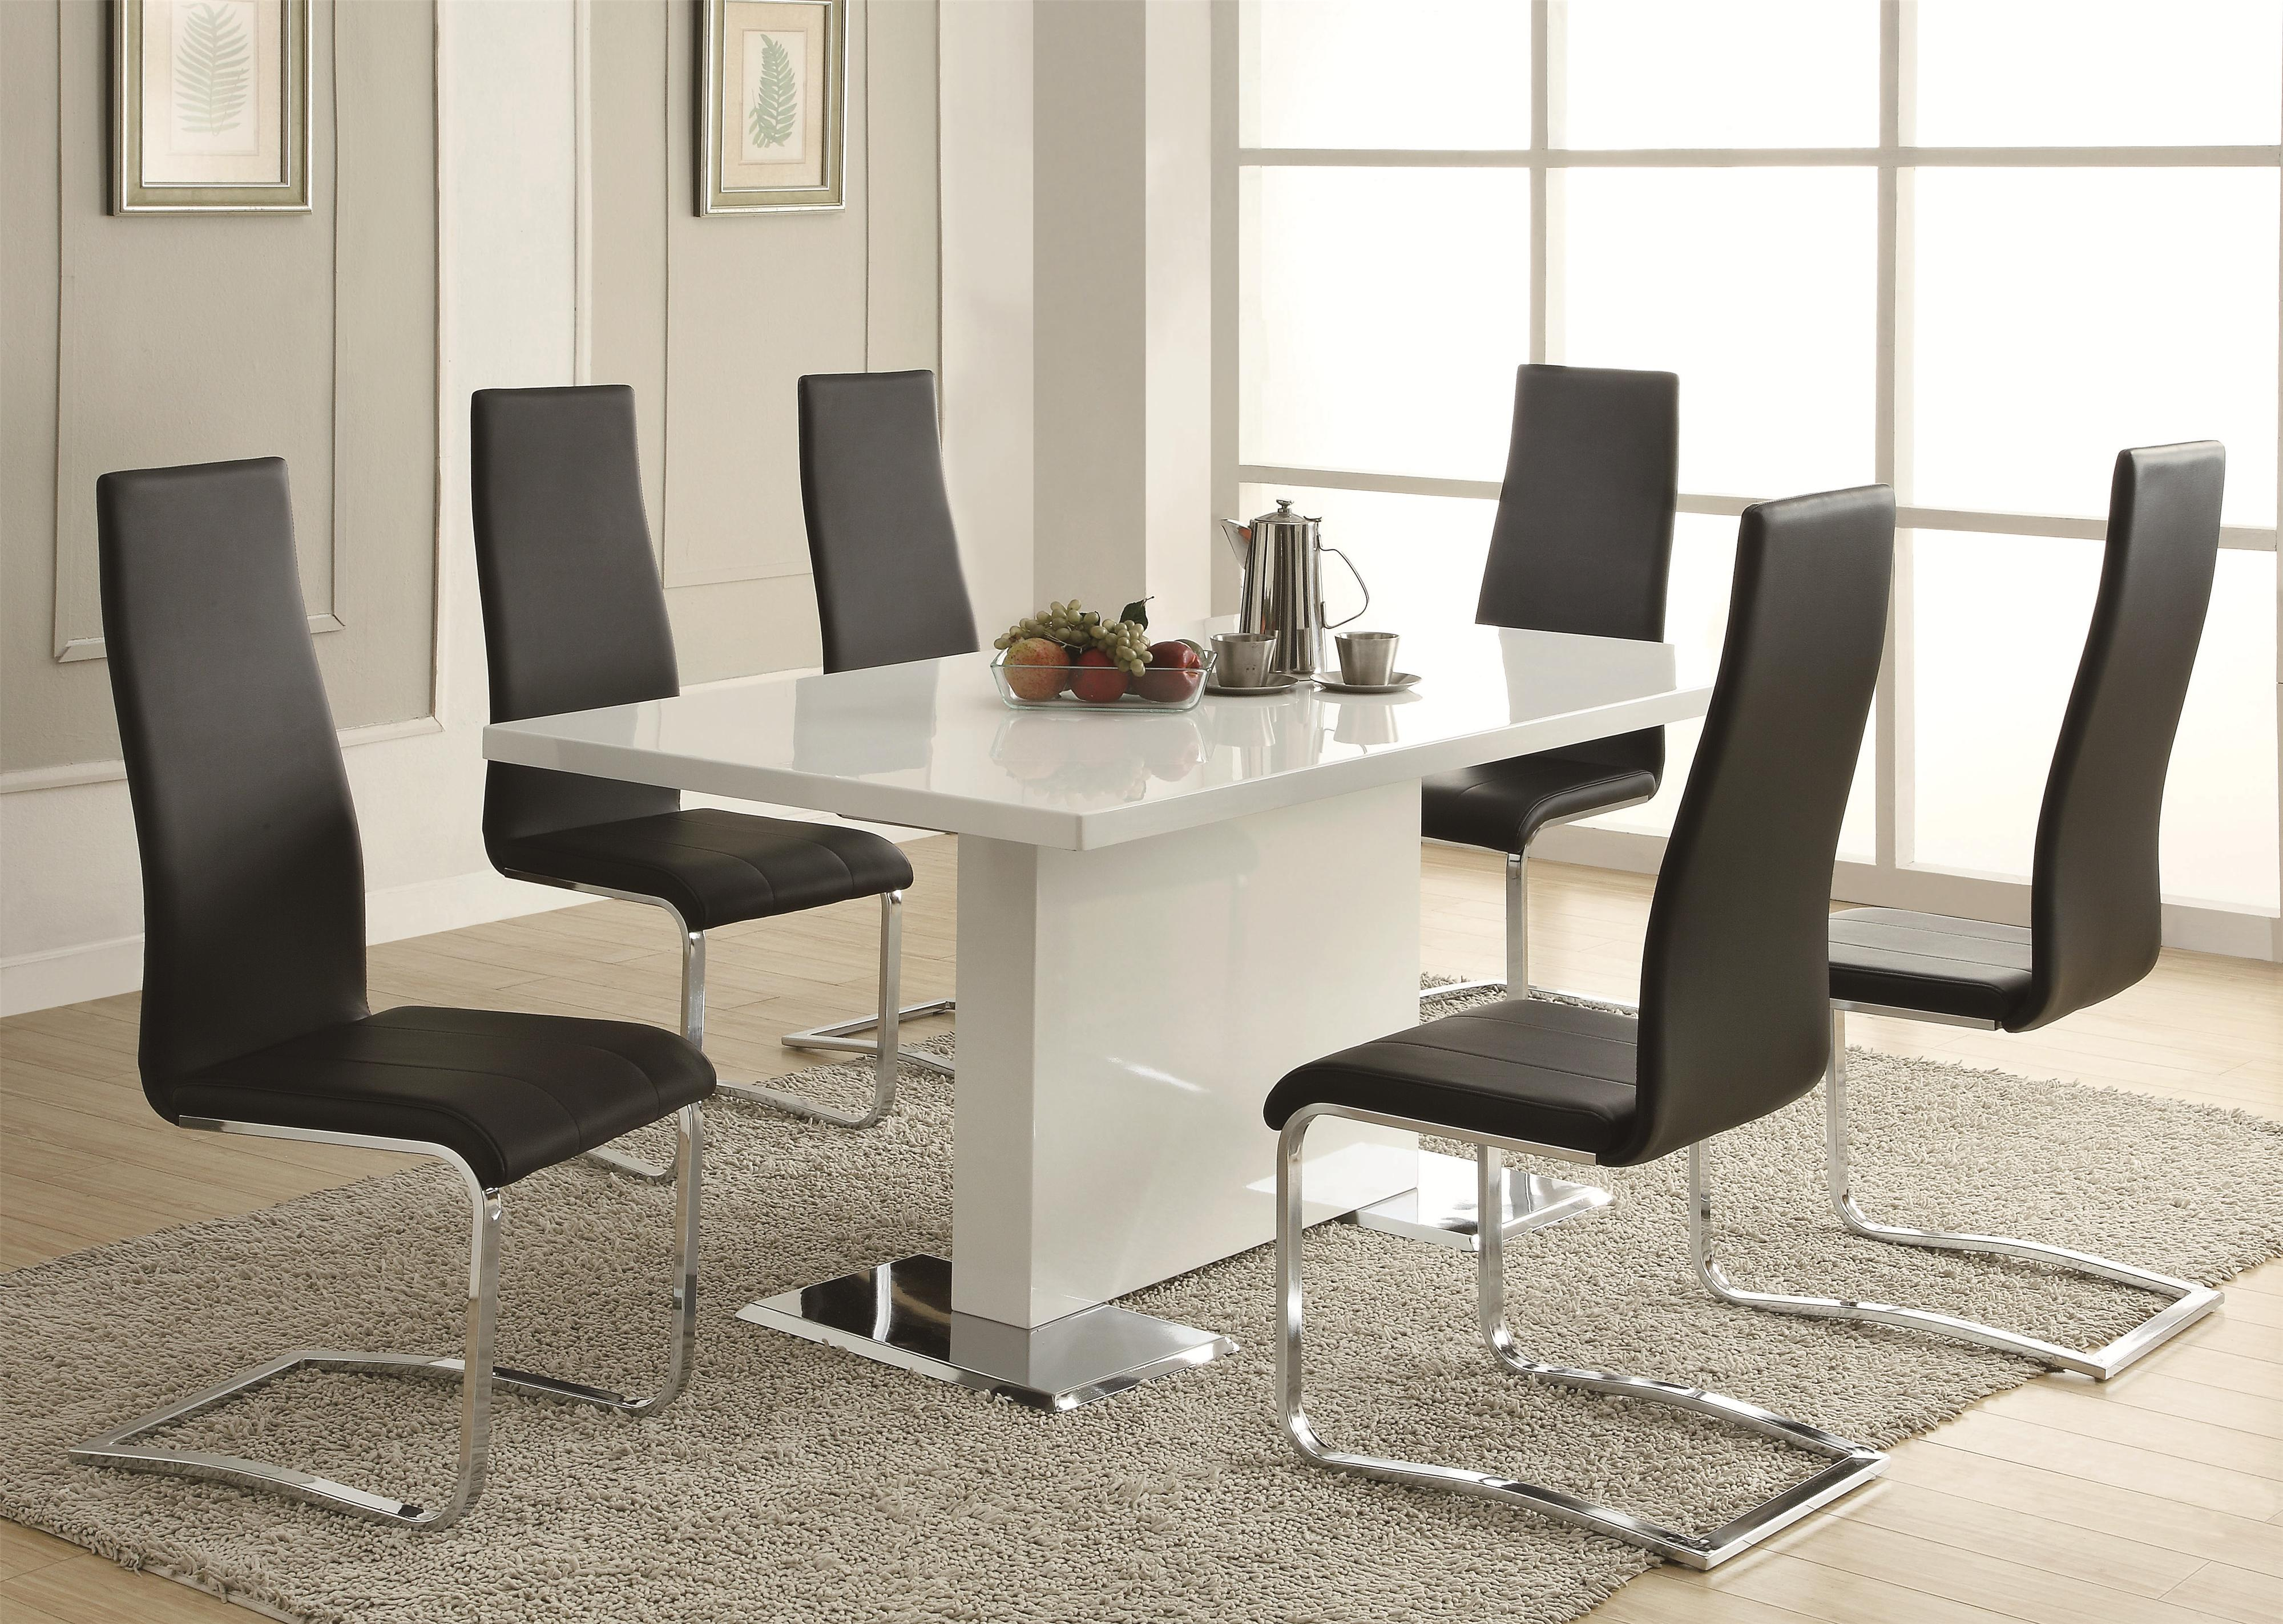 New modern dining room sets coaster modern dining contemporary dining room set with glass table -  coaster tdjgccc